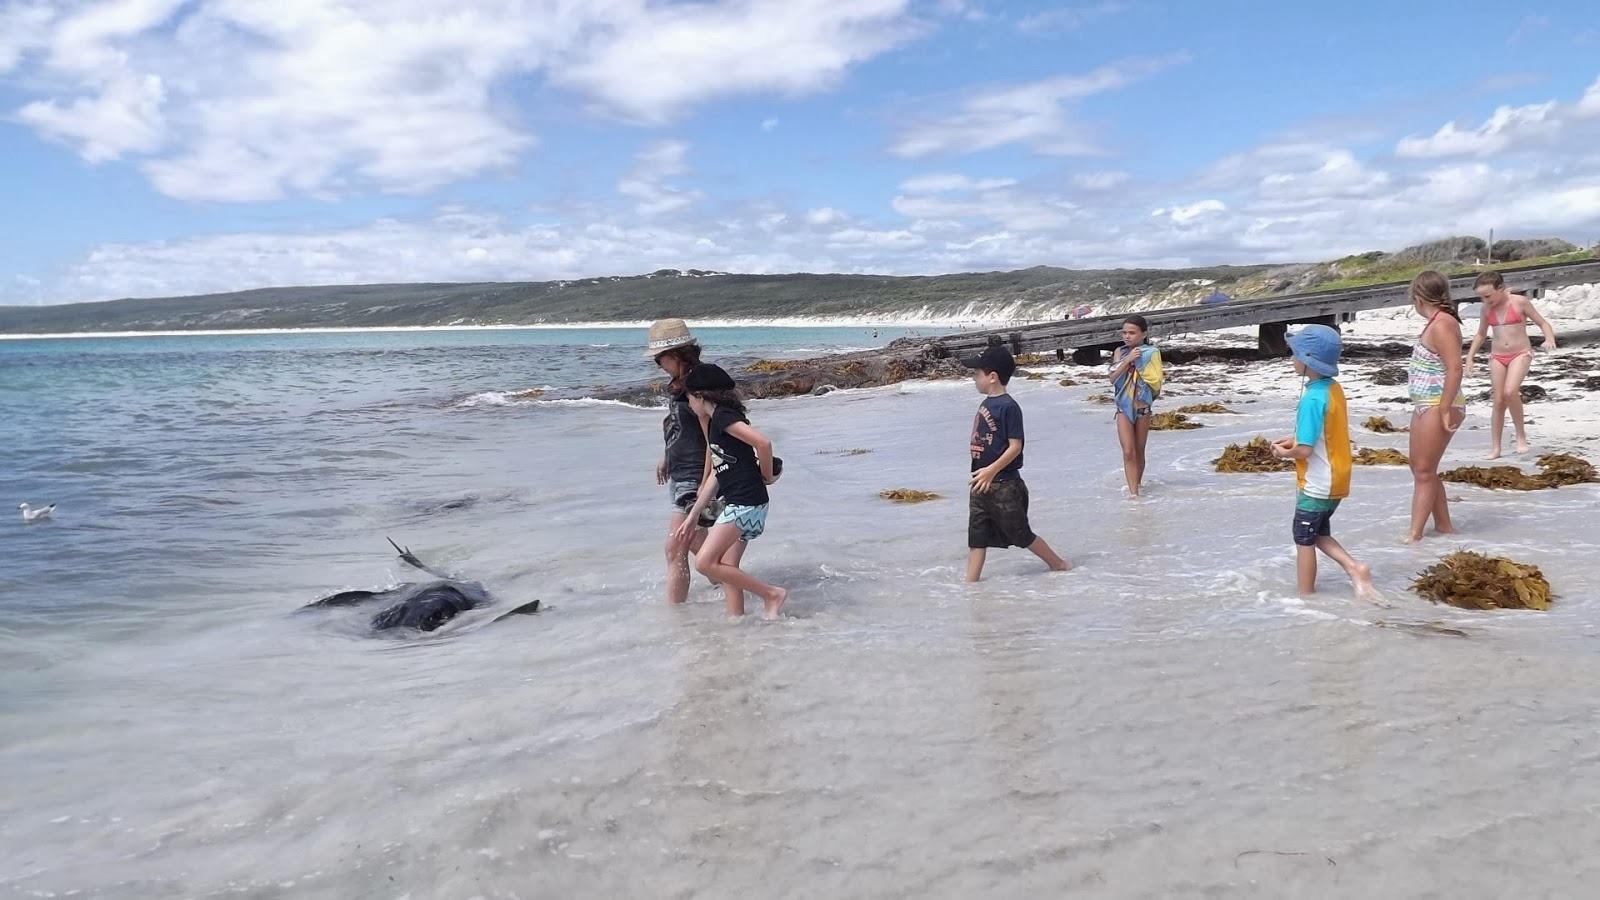 Wild stingray experience marred by reef fish decline